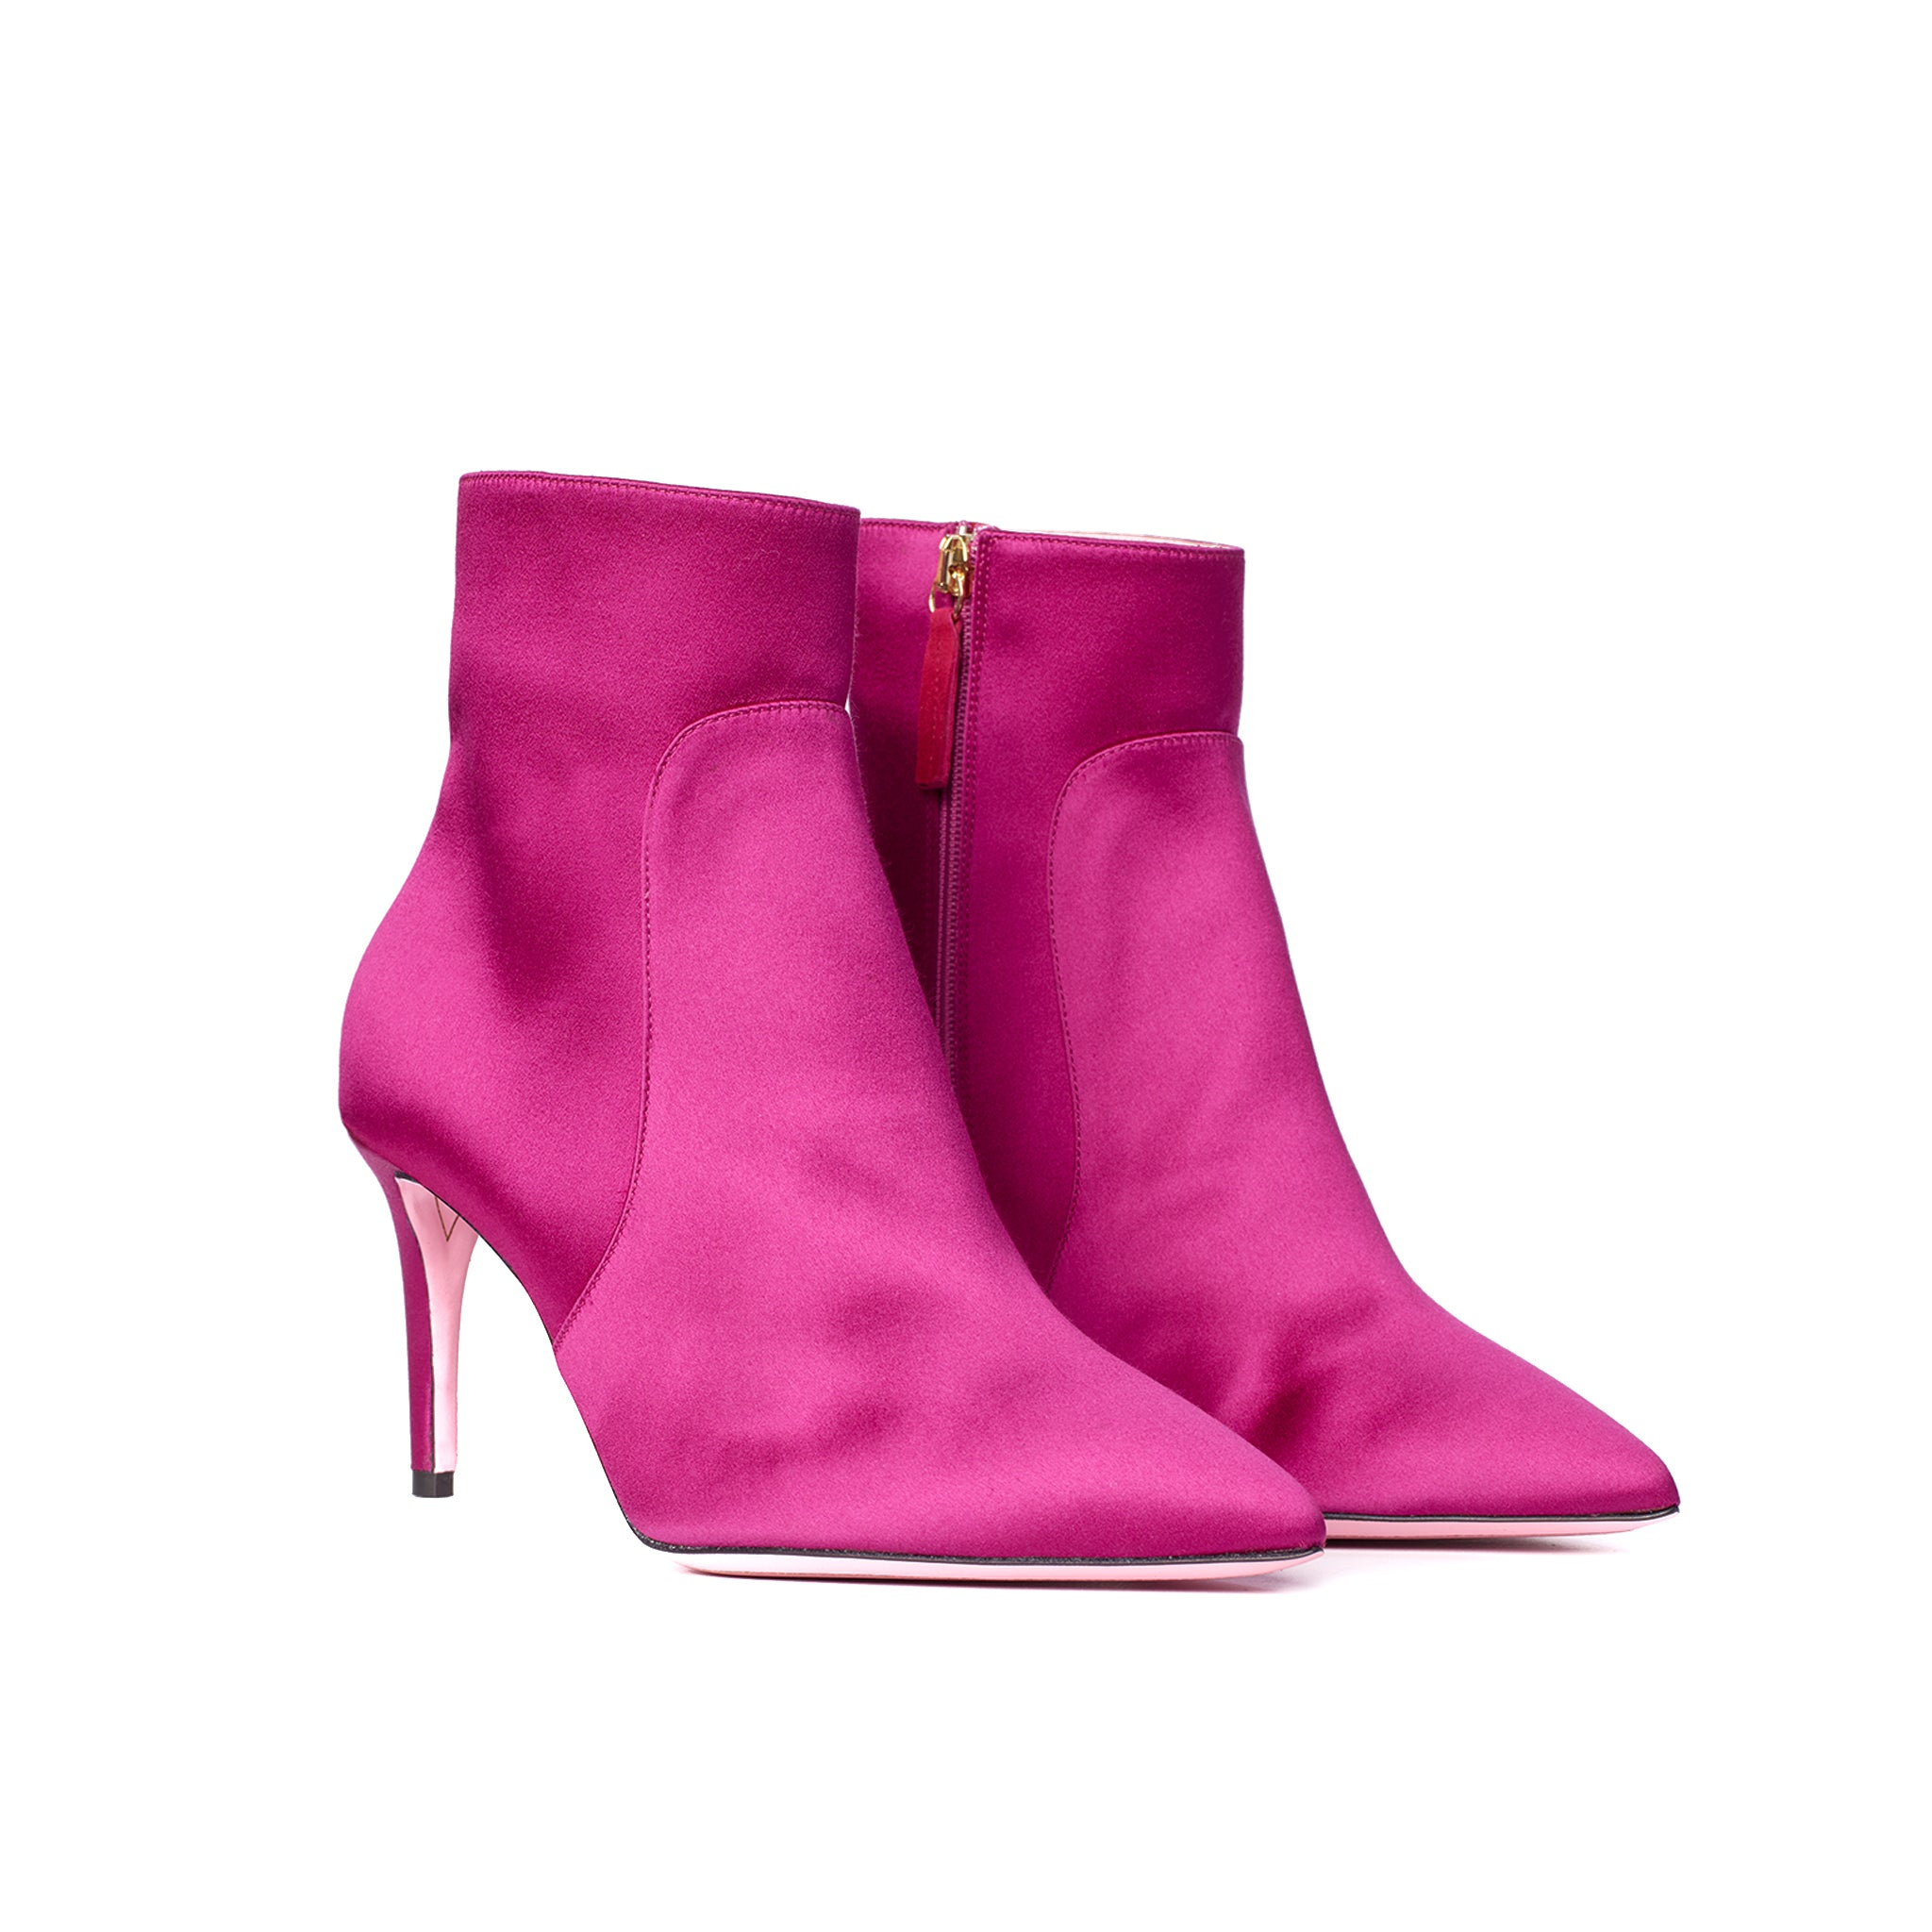 Phare classic heel Fuchsia Satin high heel boot, made in Italy 3/4 view